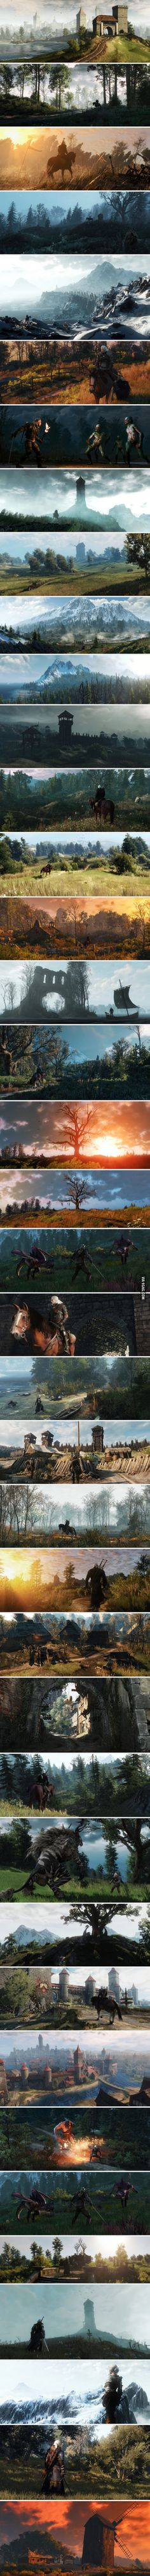 Stunningly Beautiful Witcher 3 Screenshots